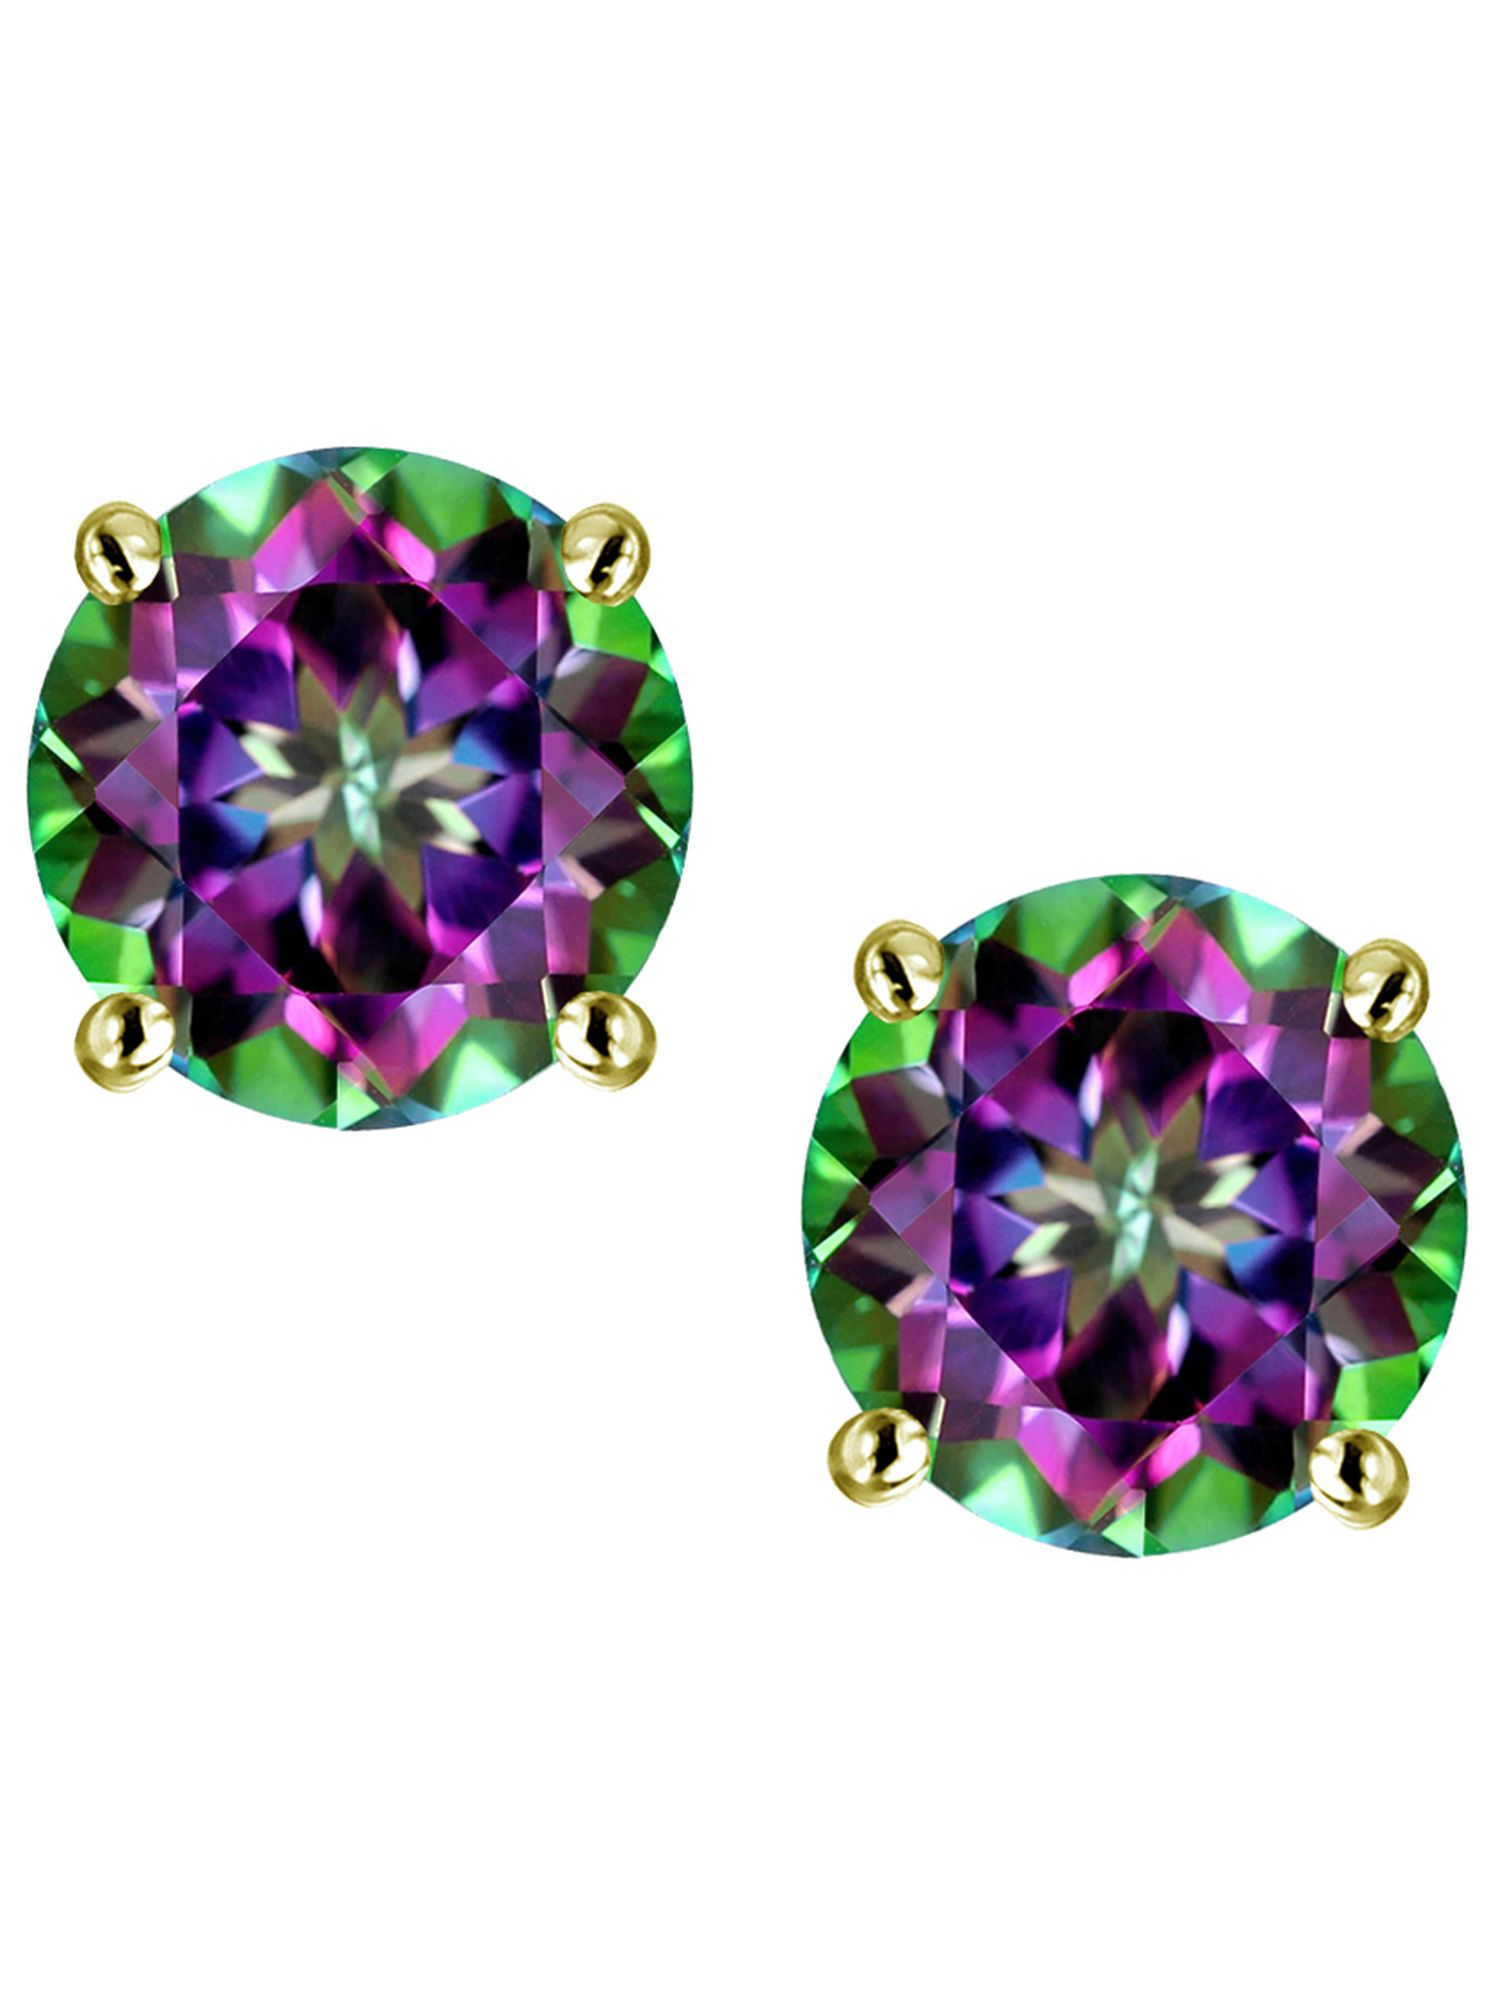 Star K 7mm Round Rainbow Mystic Topaz Classic Stud Earrings in 14 kt Yellow Gold